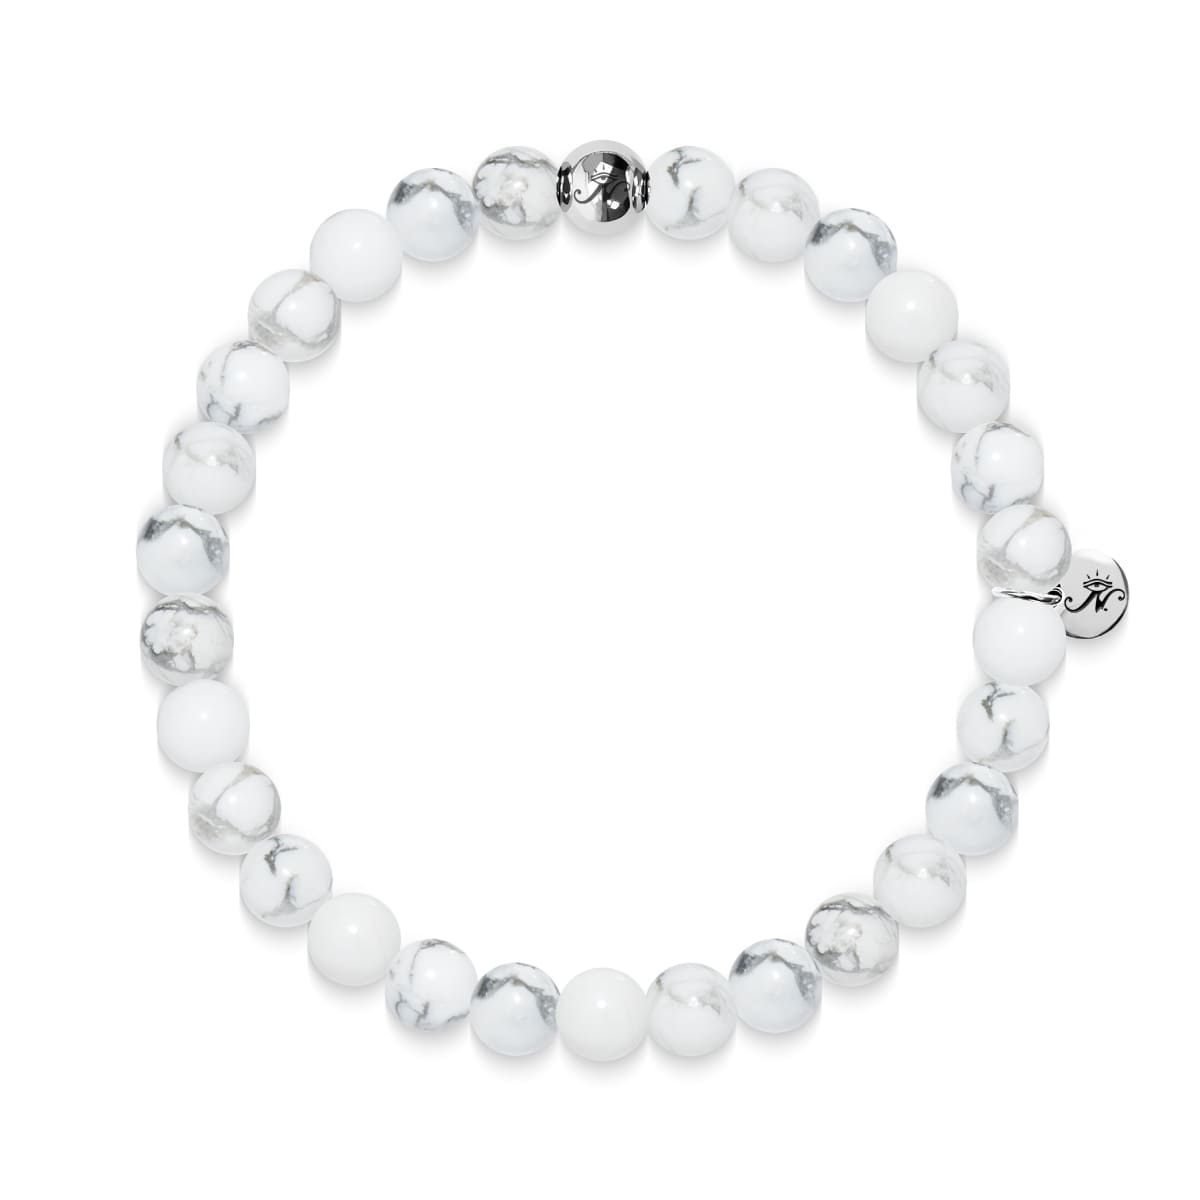 Exploration | Bracelet Silver Essence White Turquoise